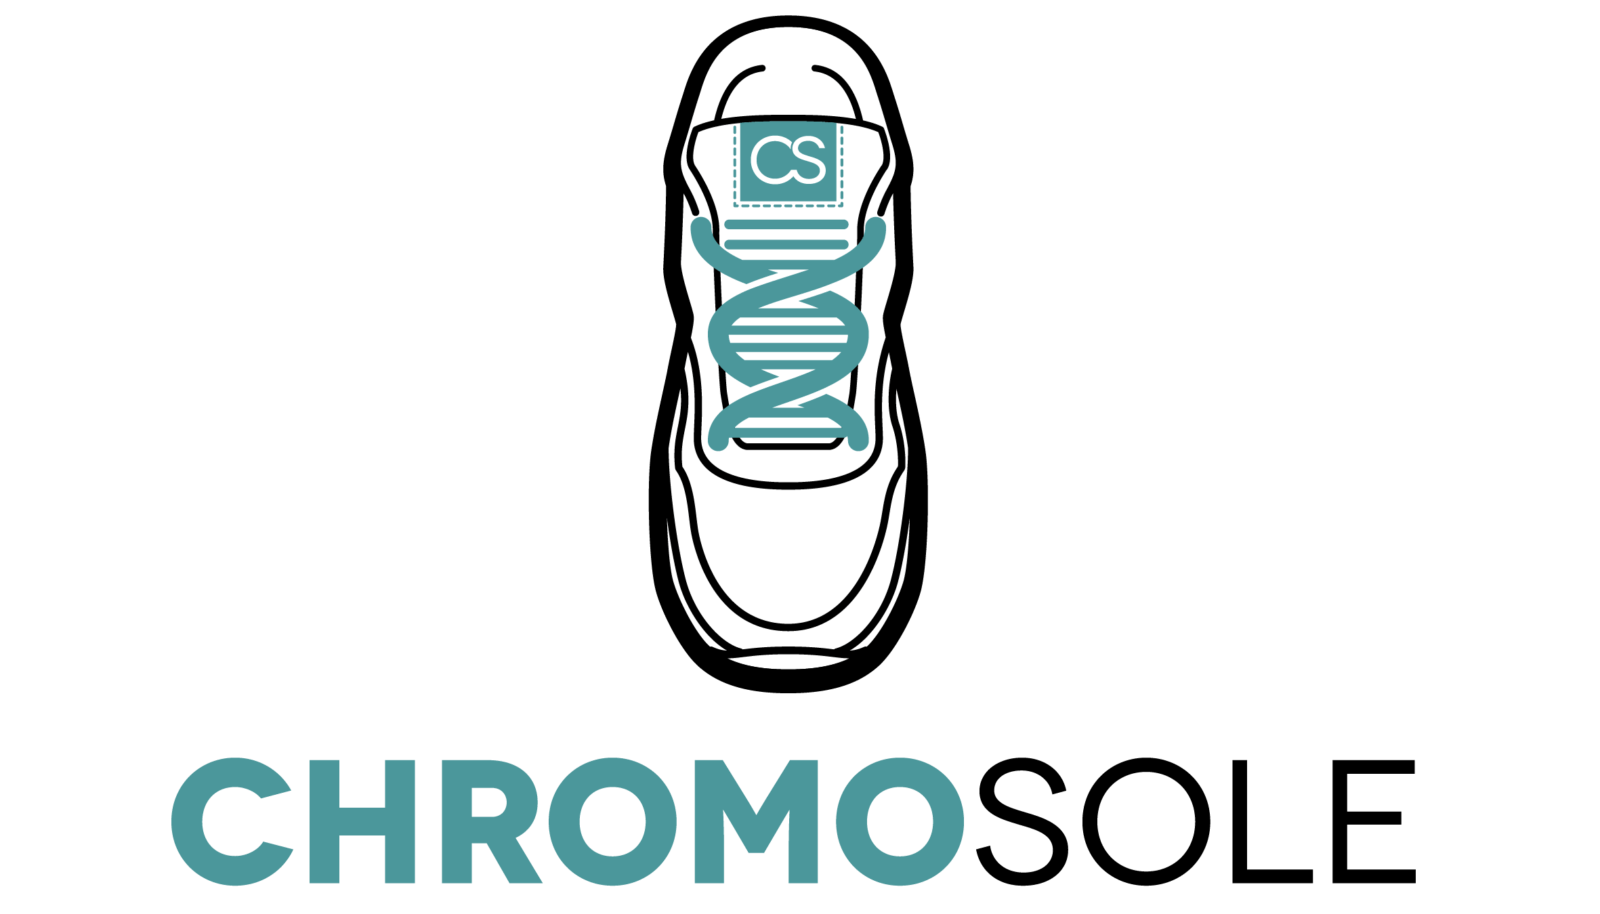 Sneaker Accessories by Chromosole - Sneaker Keychains